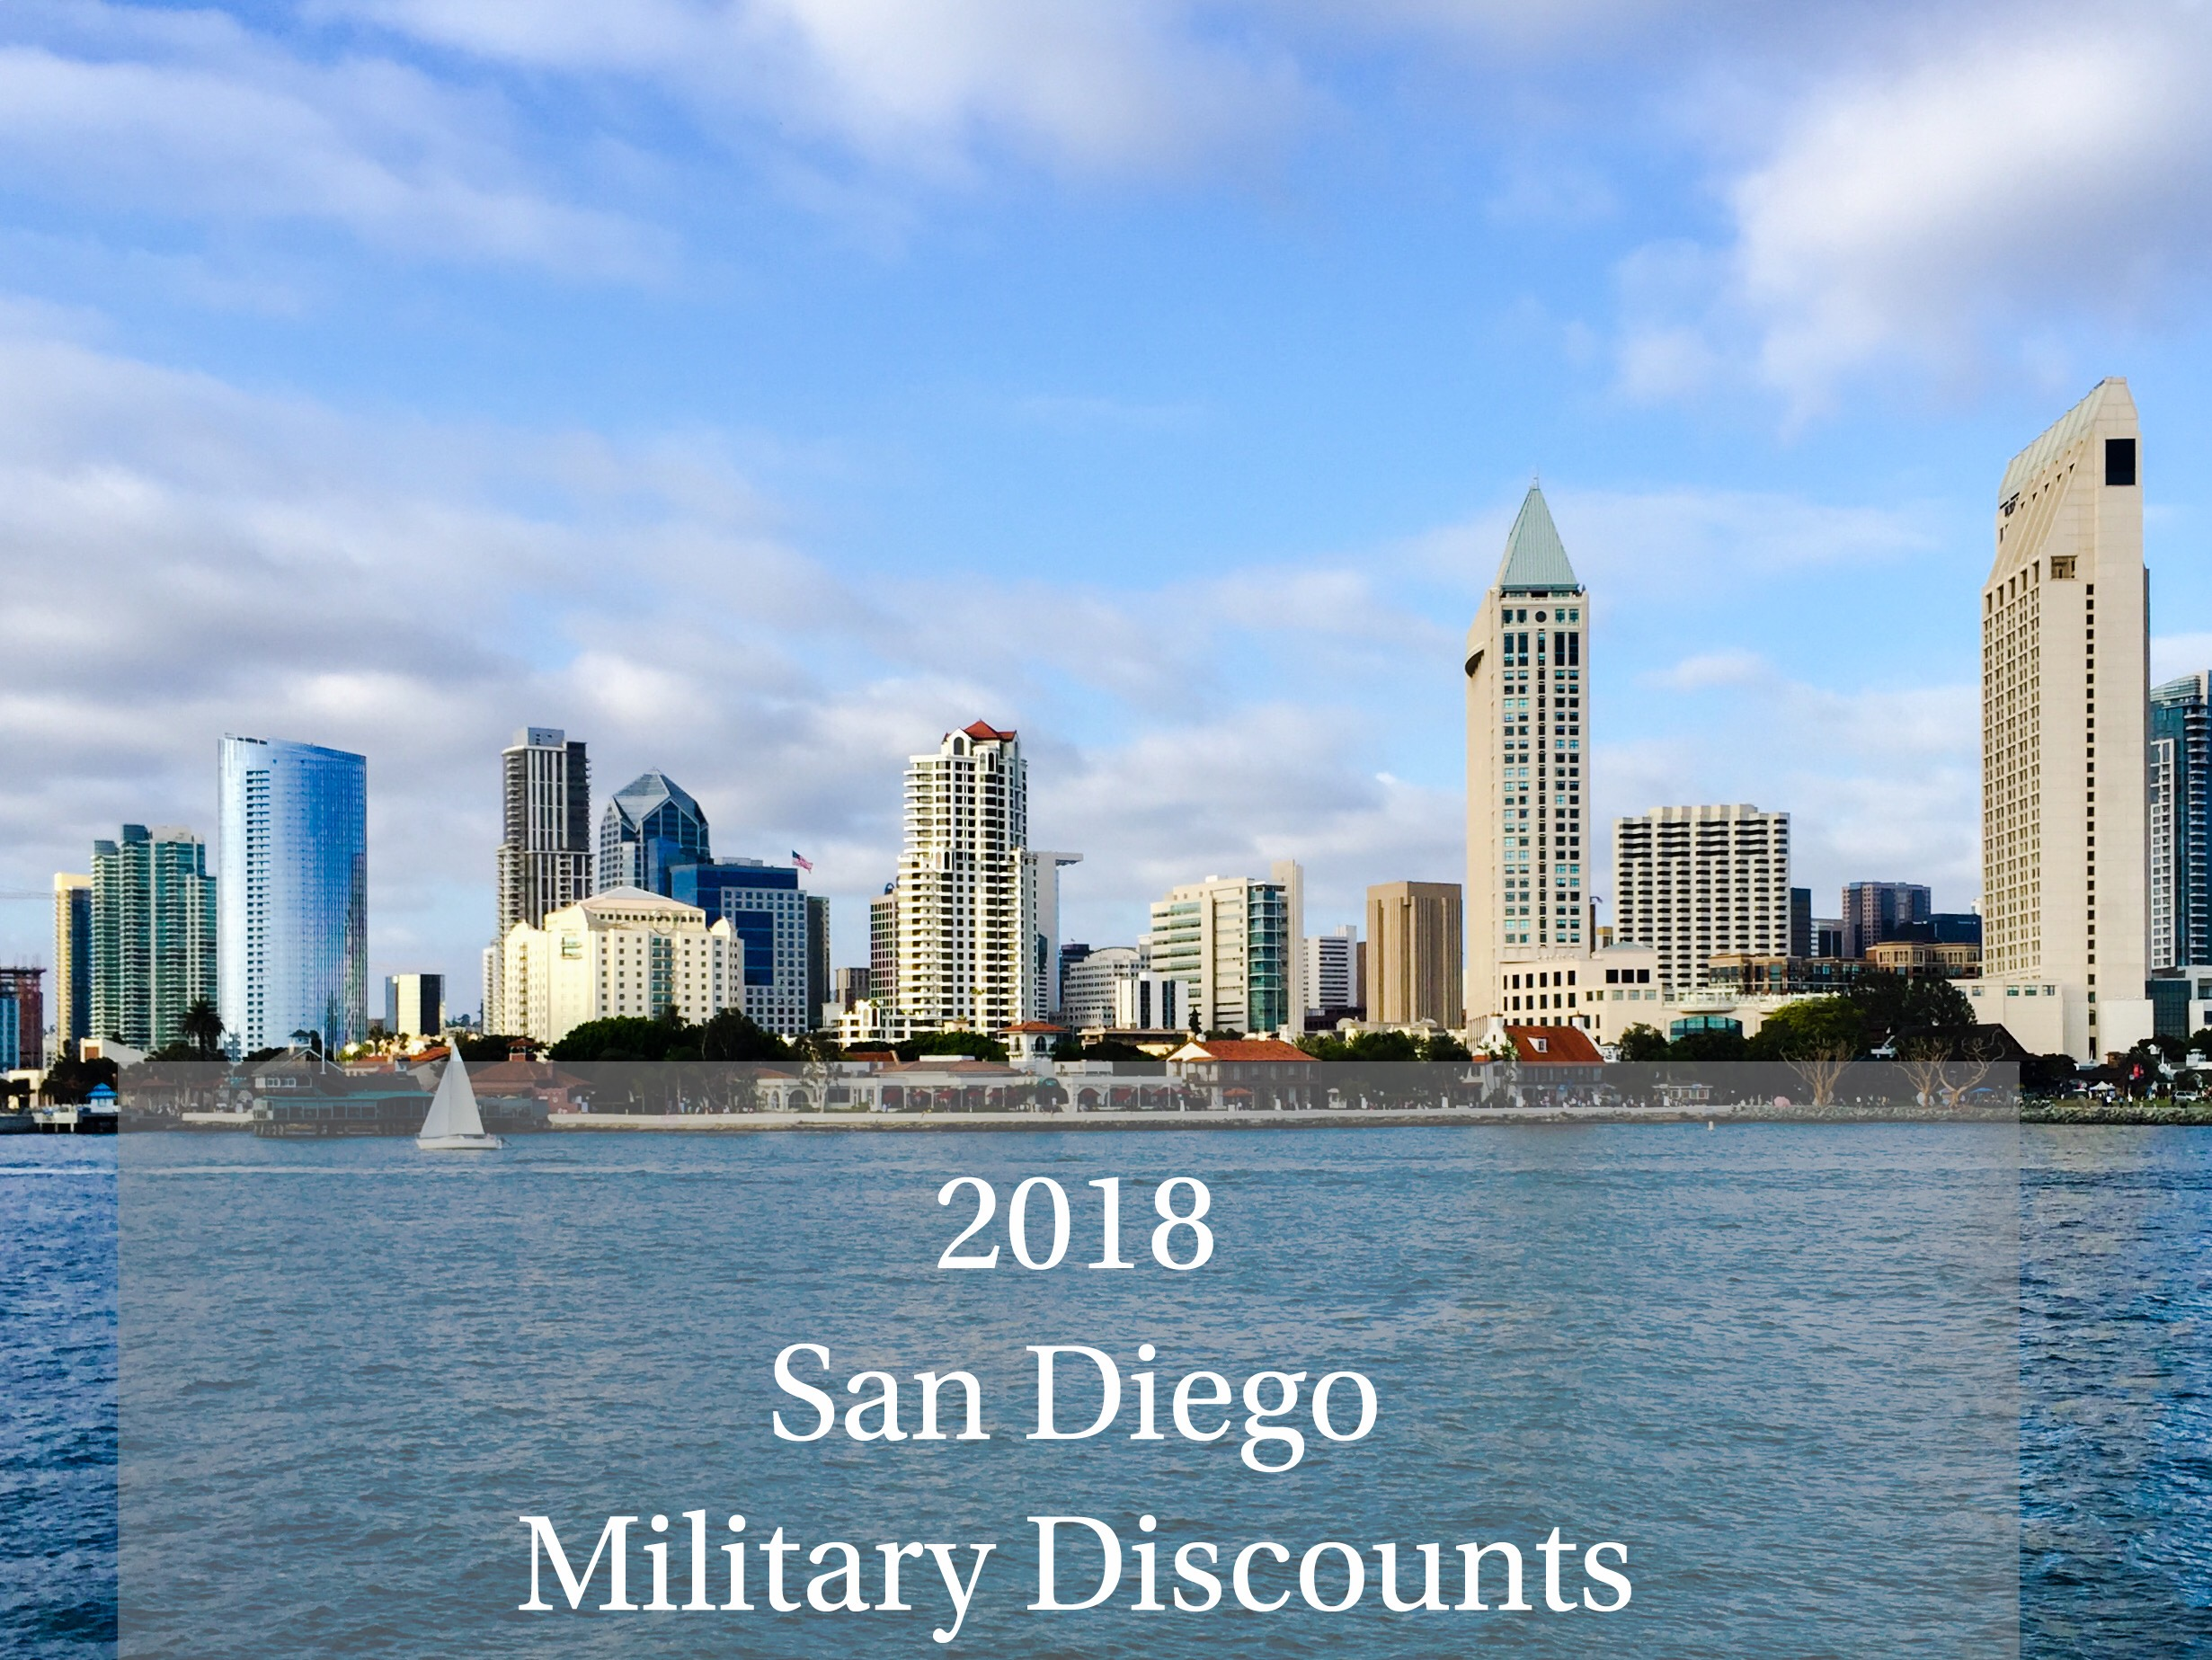 san diego military discounts